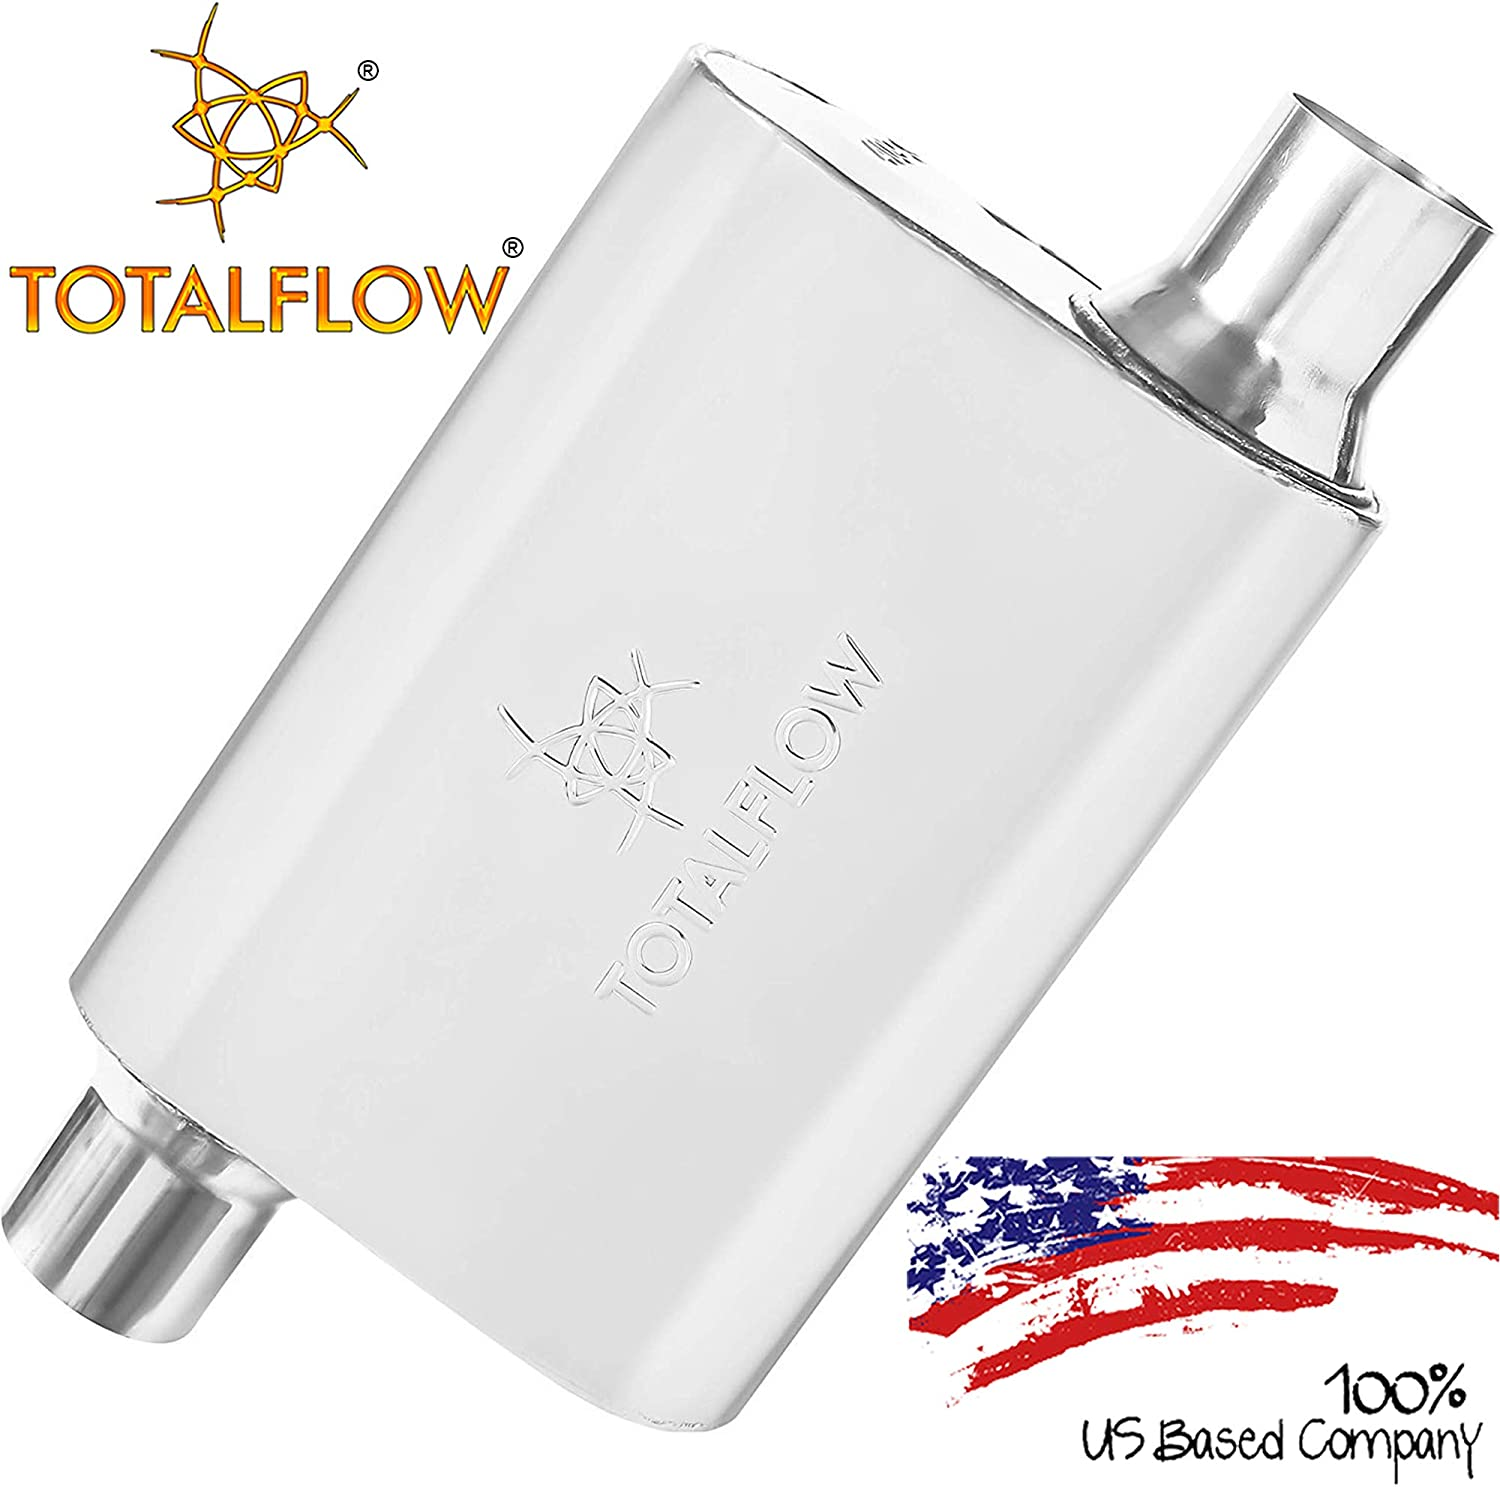 TOTALFLOW Black 3 Center In//3 Center Out 443015 409 Stainless Steel Single Chamber Universal Muffler 3 Center Out